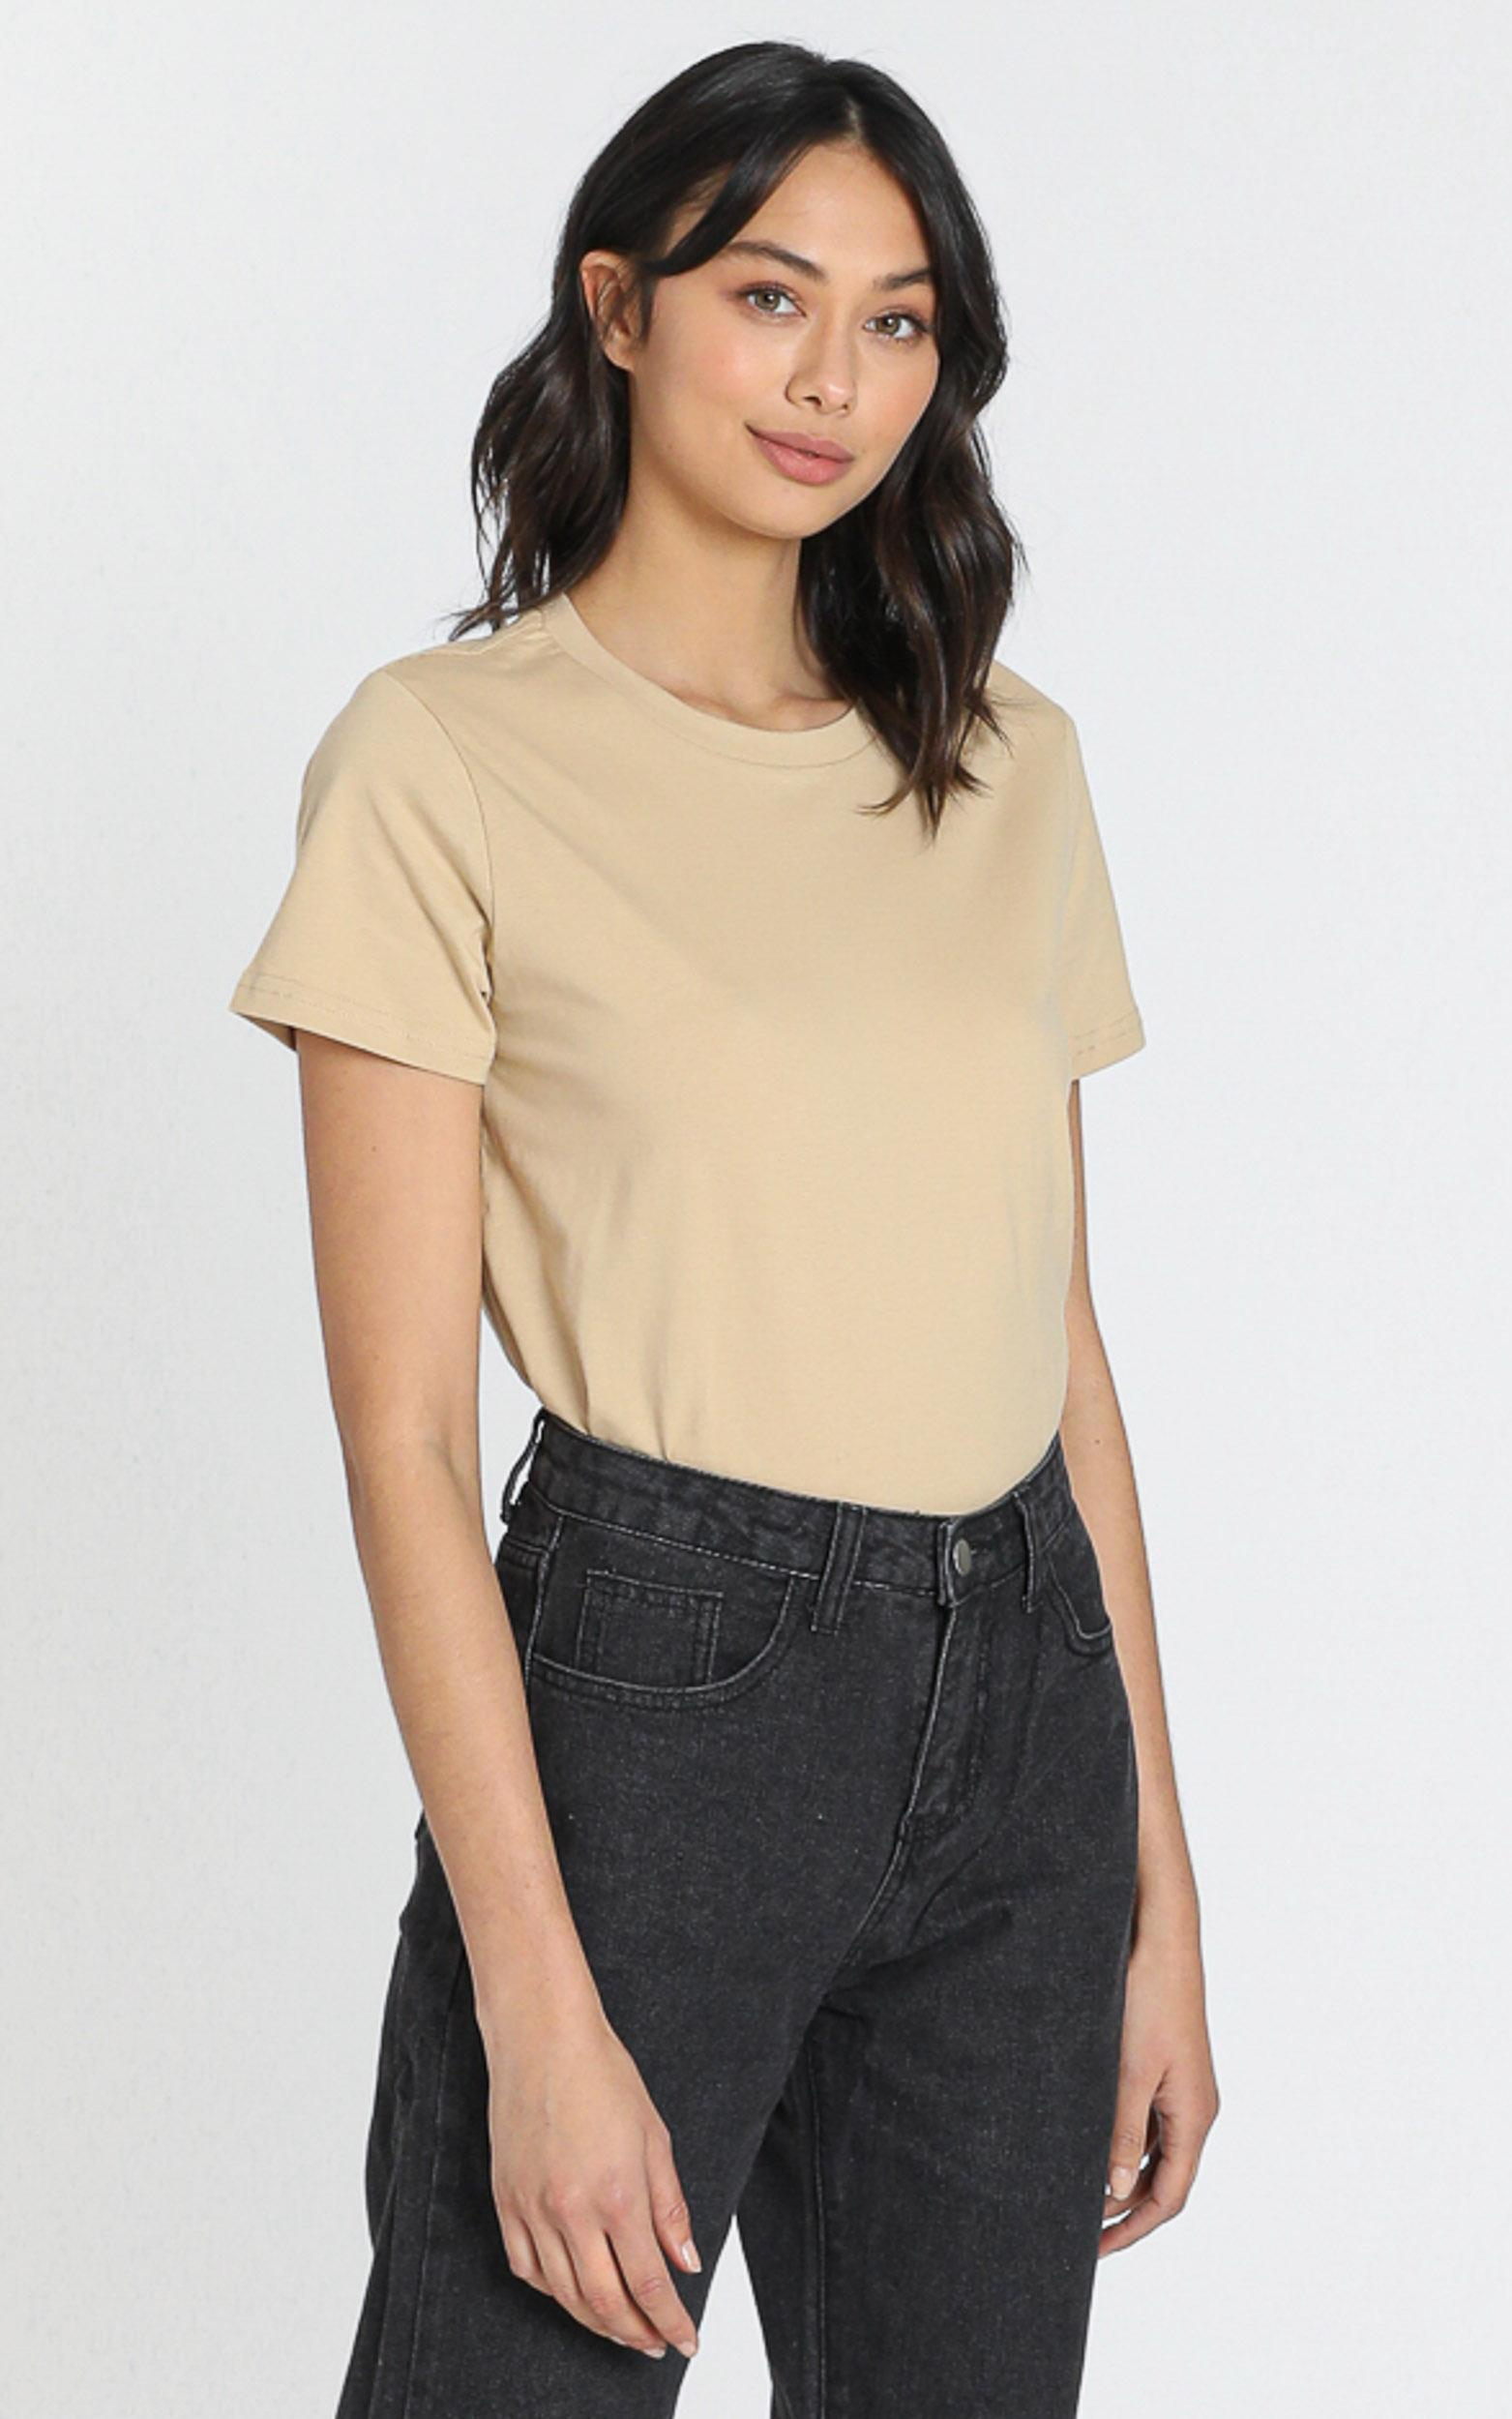 AS Colour - Maple Tee in Tan - 6 (XS), Tan, hi-res image number null